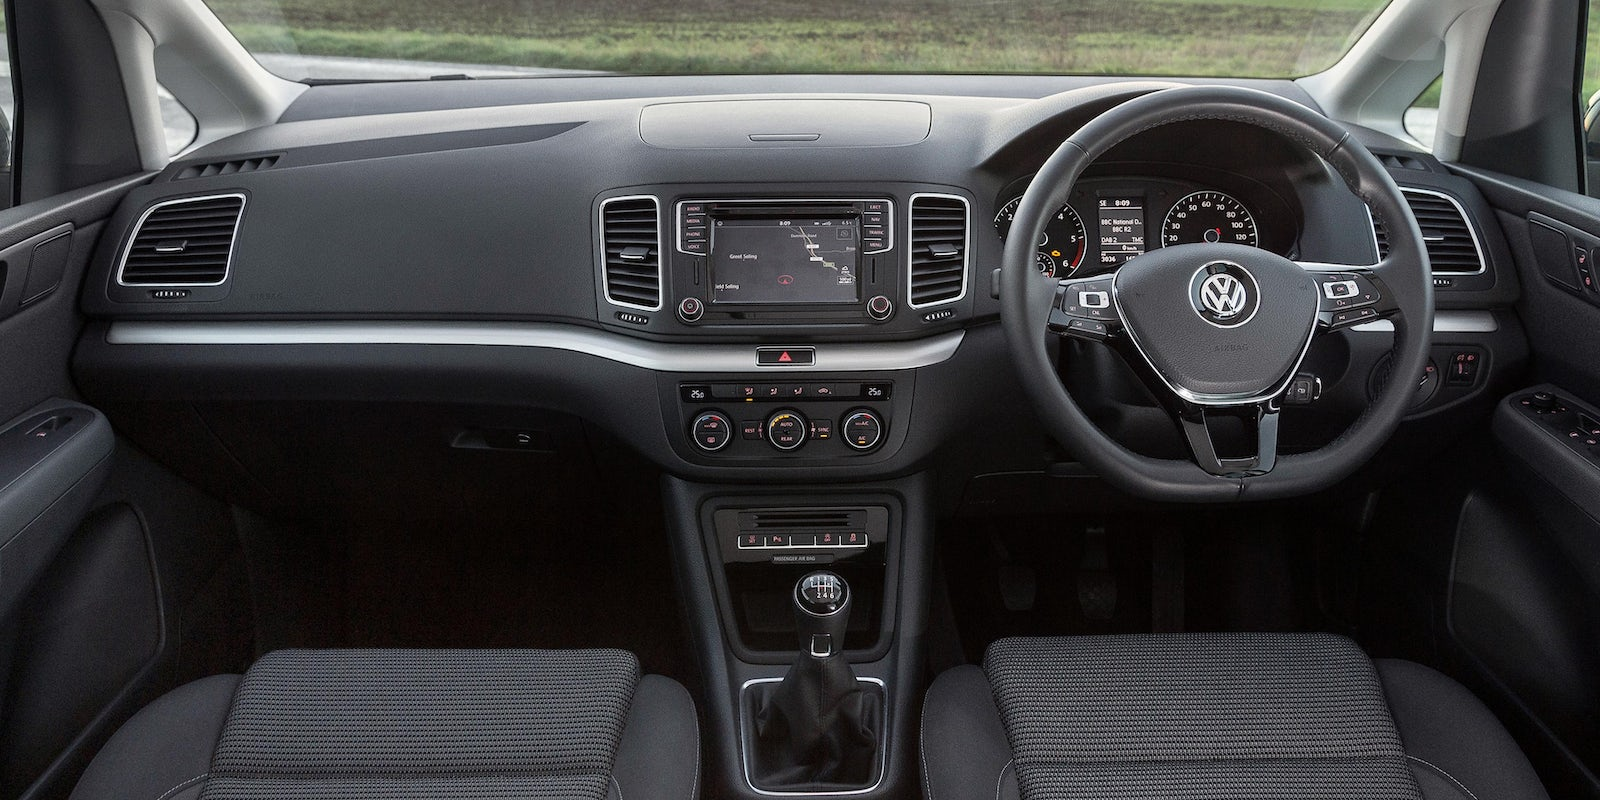 Volkswagen Sharan interior and infotainment | carwow